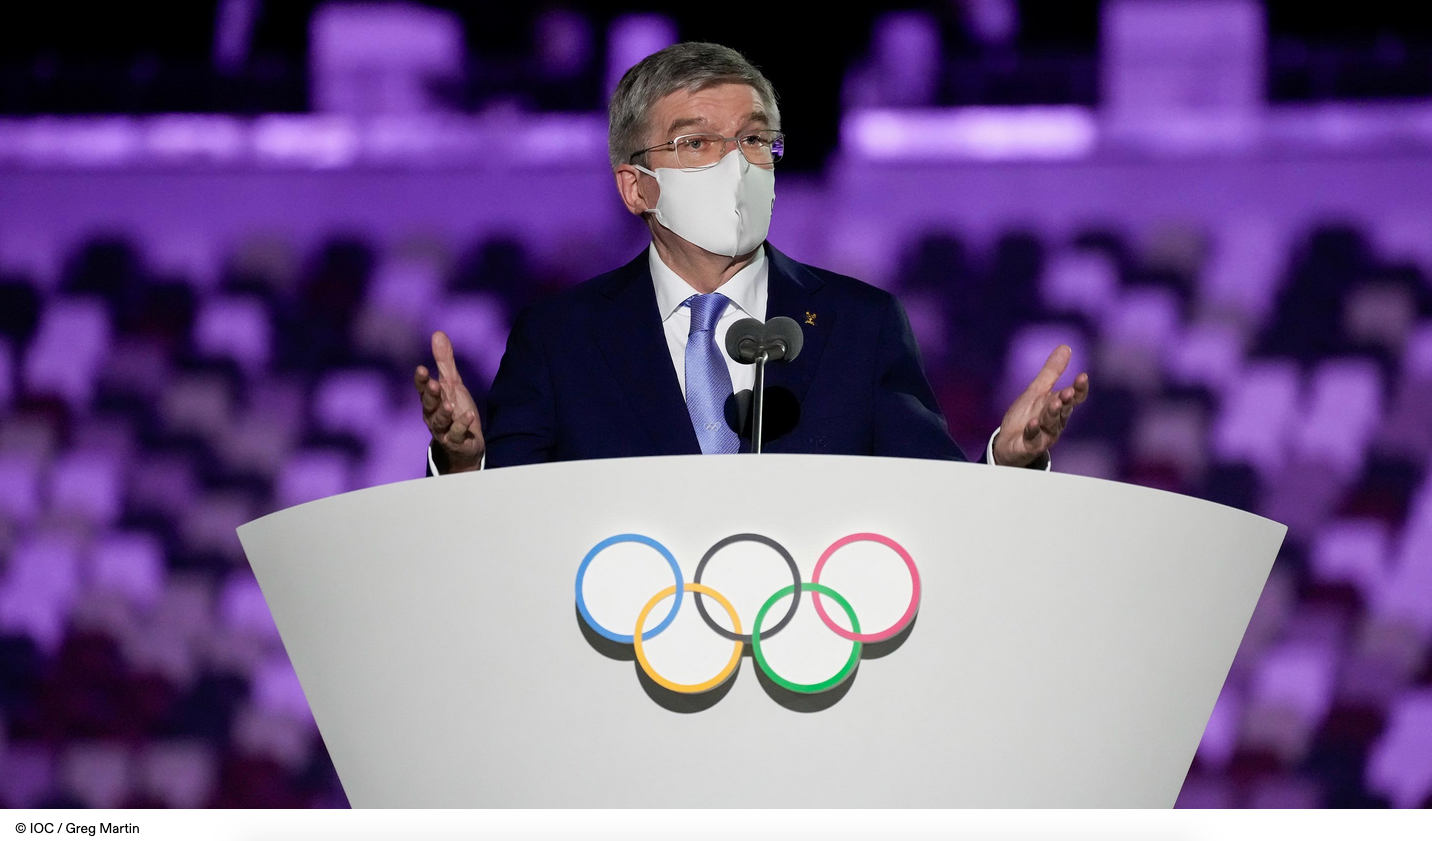 IOC President speaks at Tokyo 2020 Opening Ceremony   LiveFEED